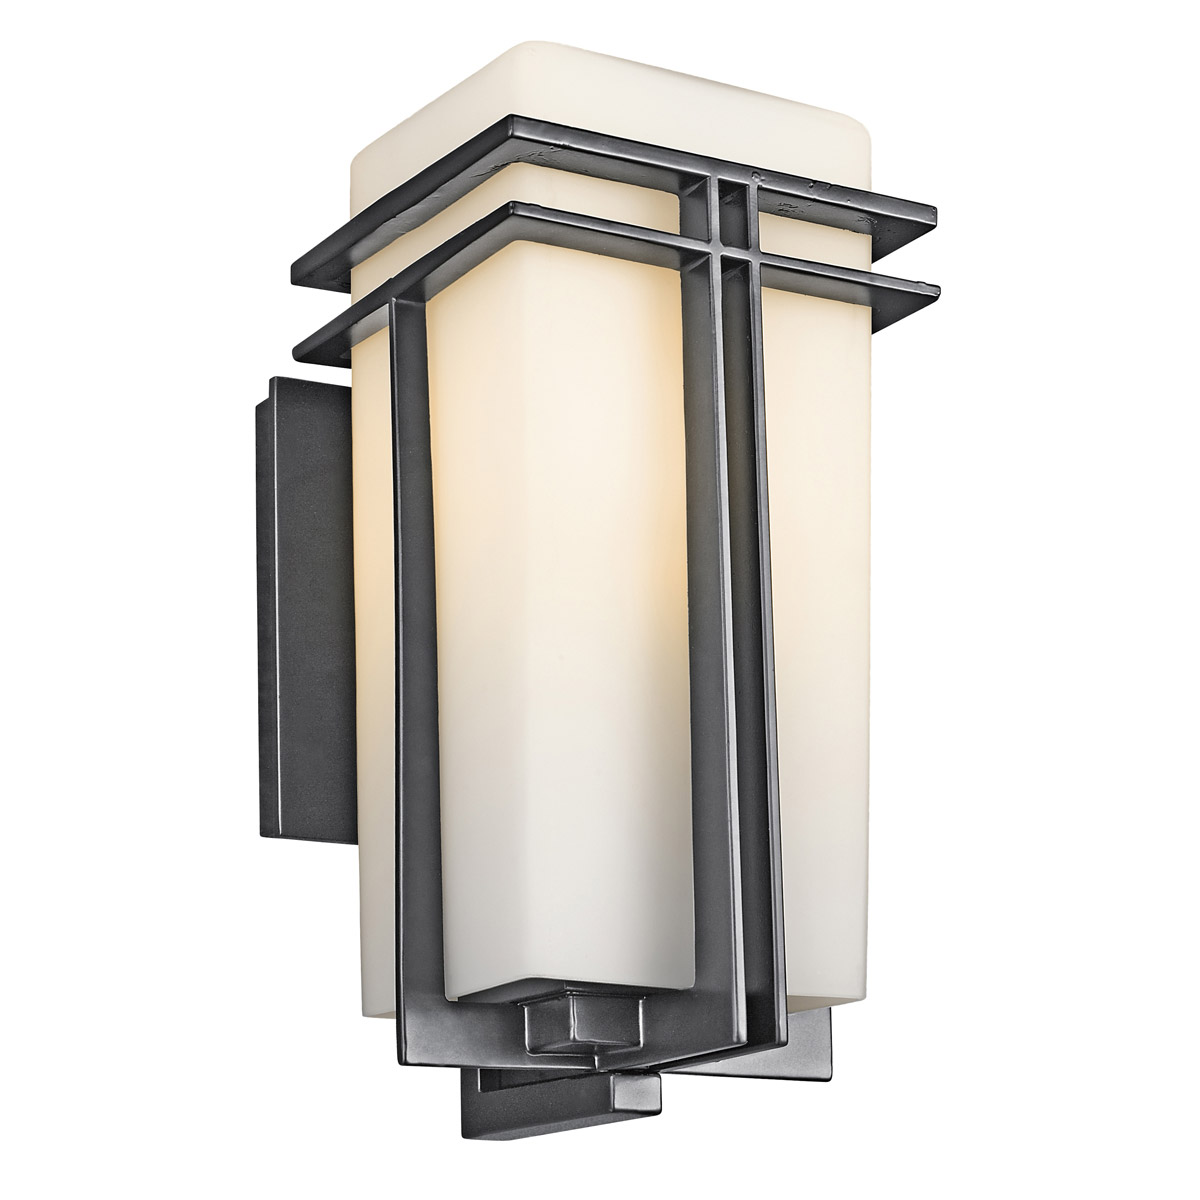 Kichler 49201bk tremillo outdoor wall fixture aloadofball Choice Image